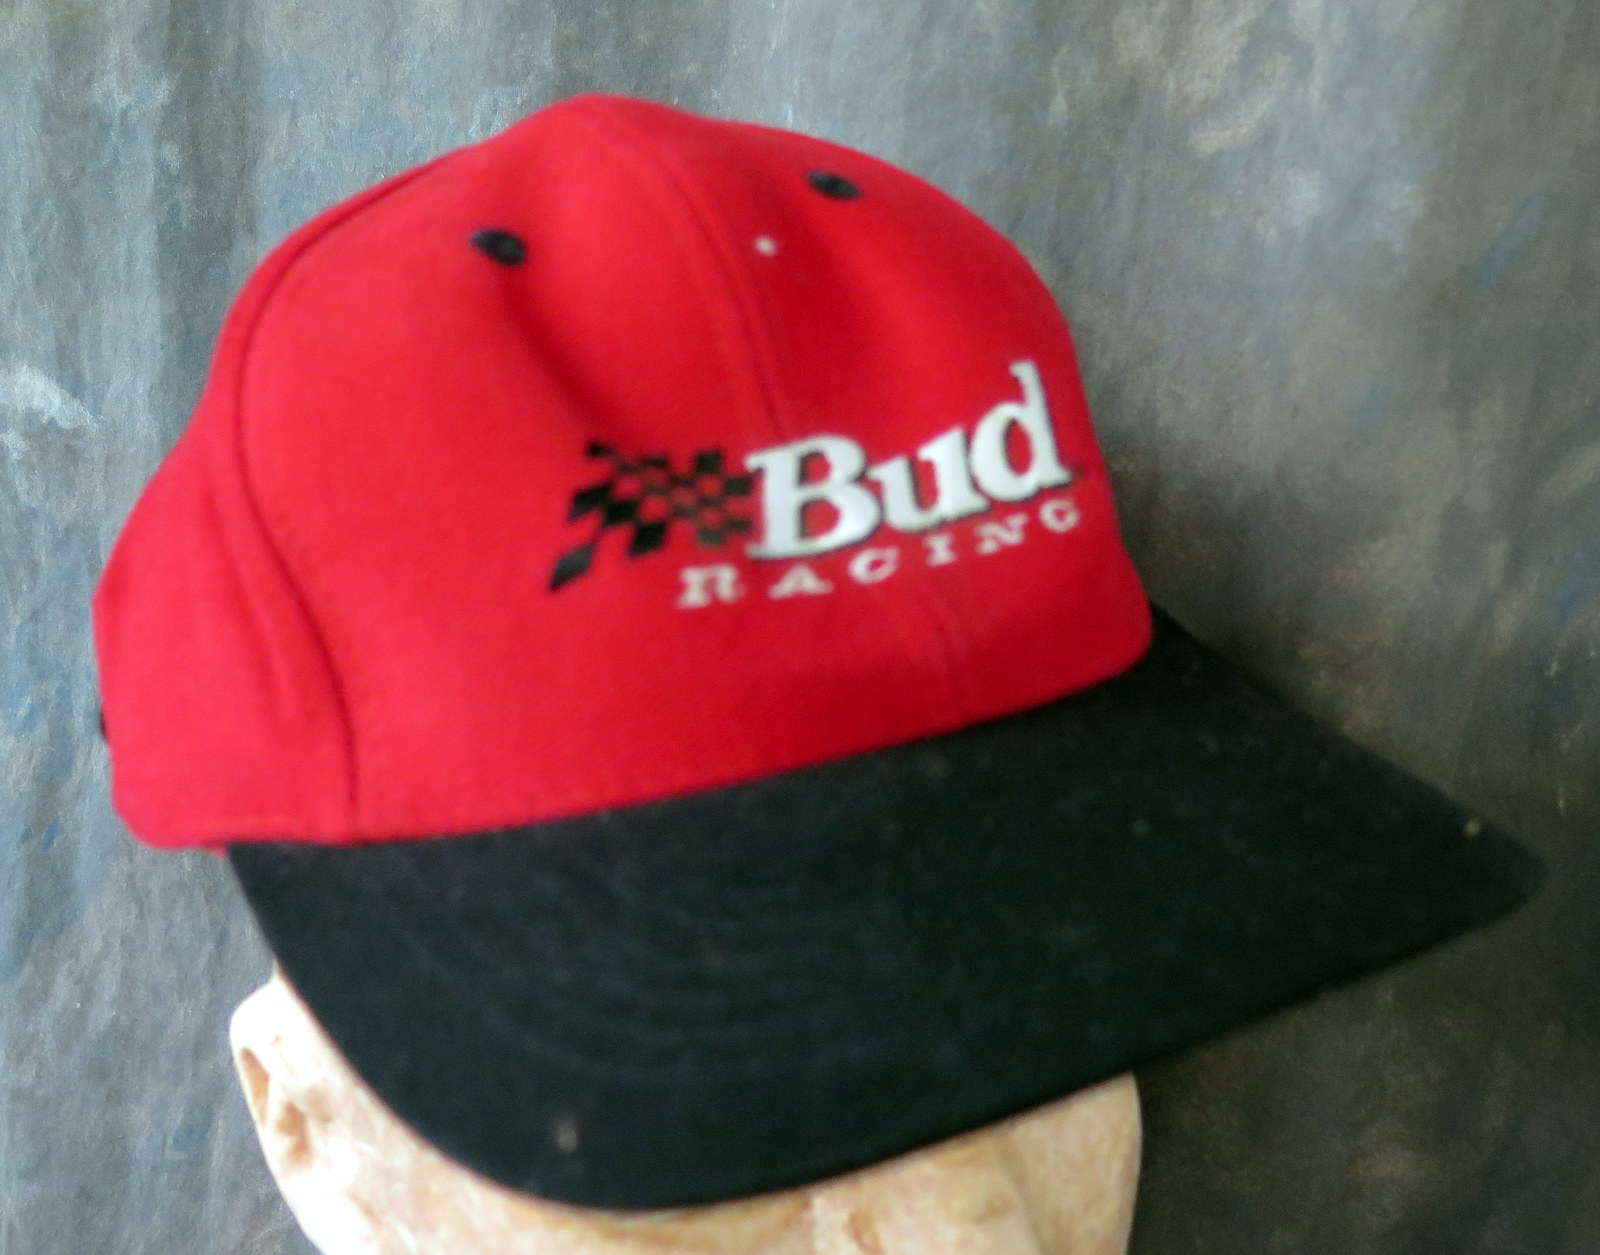 Primary image for Bud Racing Stitched Red and Black 100% Cotton Adjustable Baseball Cap /Tag